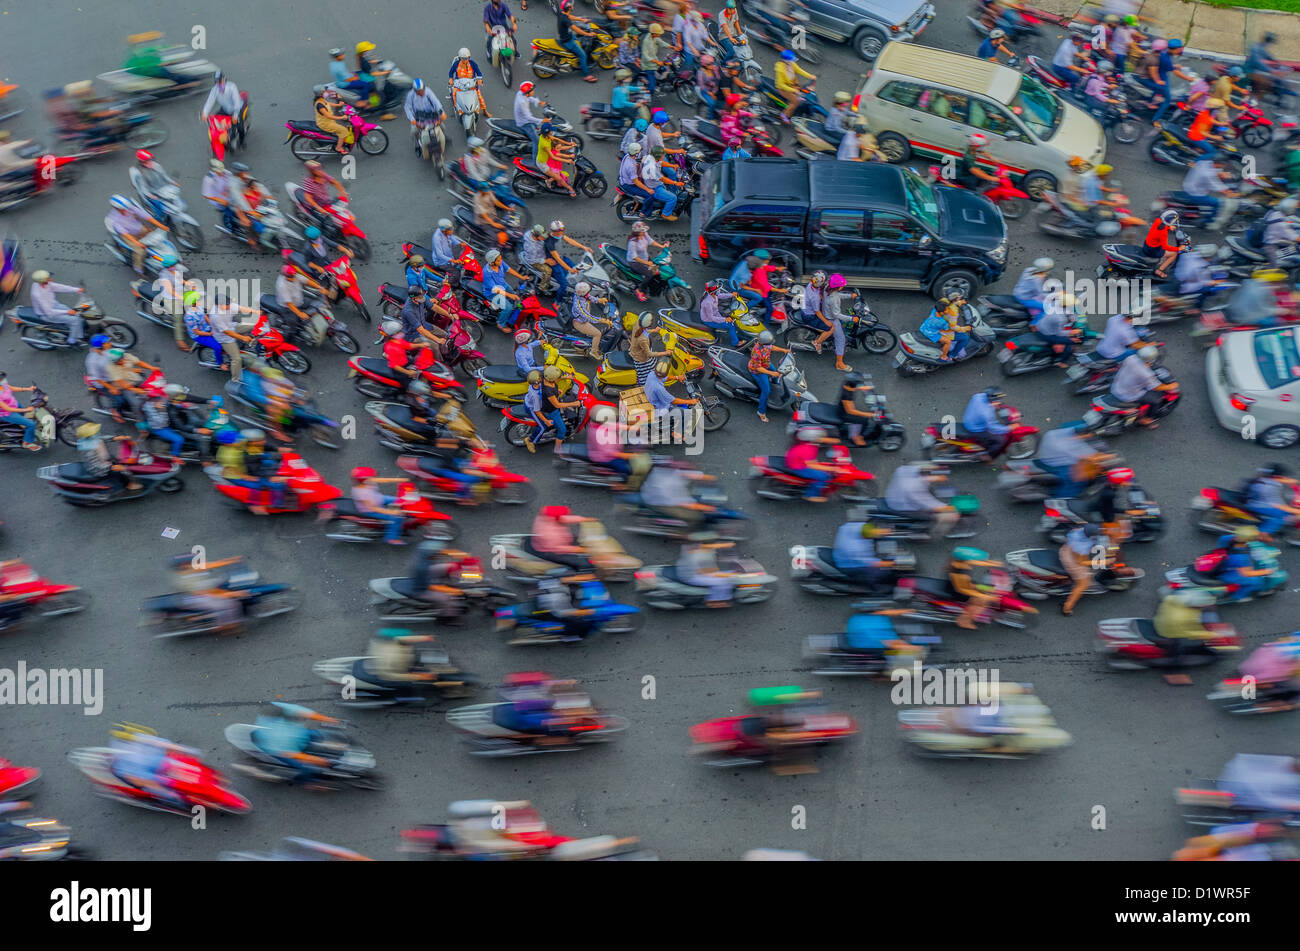 A sea of mopeds during rush hour in central Saigon, Ho Chi Minh, Vietnam, Asia - Stock Image